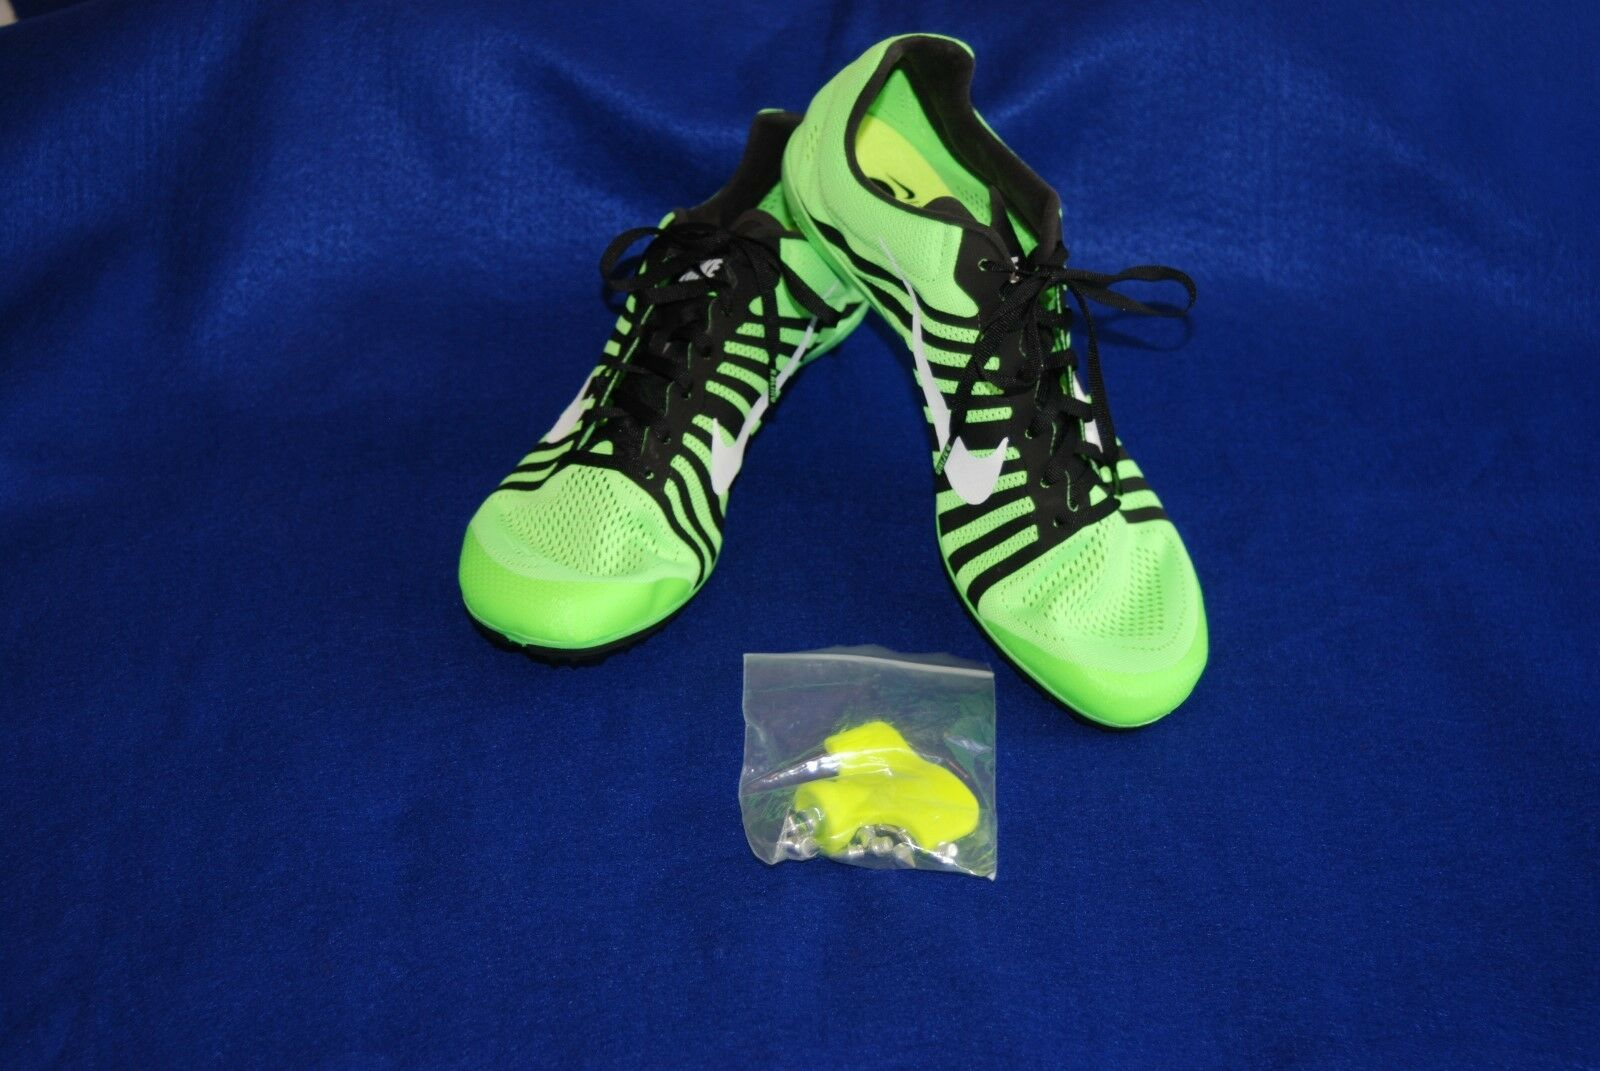 Nike Men's Zoom D Track and Field Spikes 819164-301 Voltage Green Size 14 NWOB